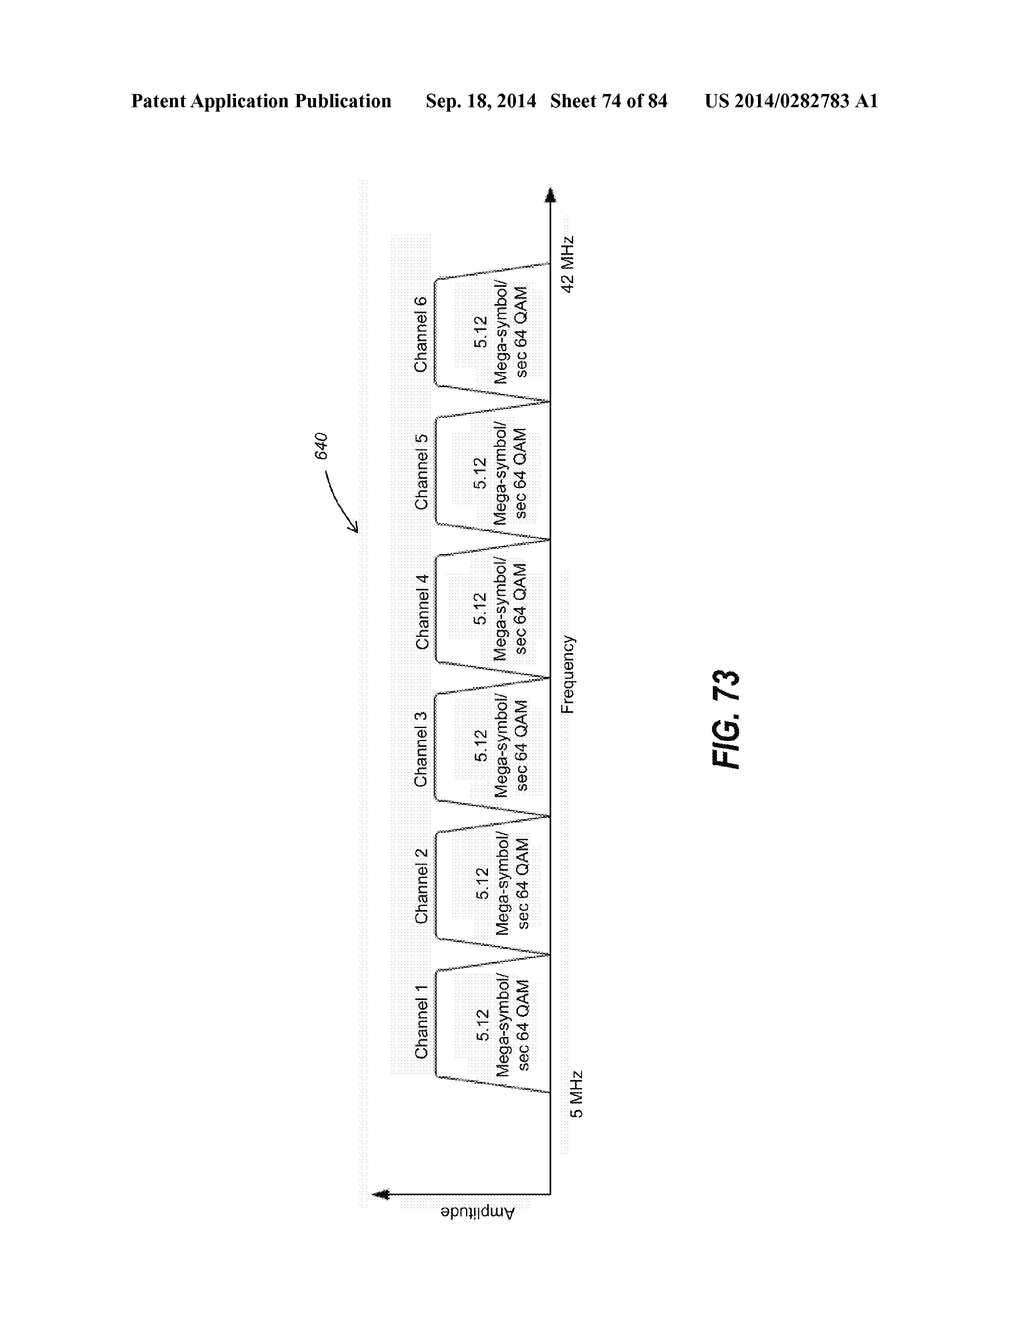 Hybrid Fiber Coaxial Hfc Cable Communication Systems Having Well Coax Aligned Optical And Radio Frequency Links To Facilitate Upstream Channel Plans